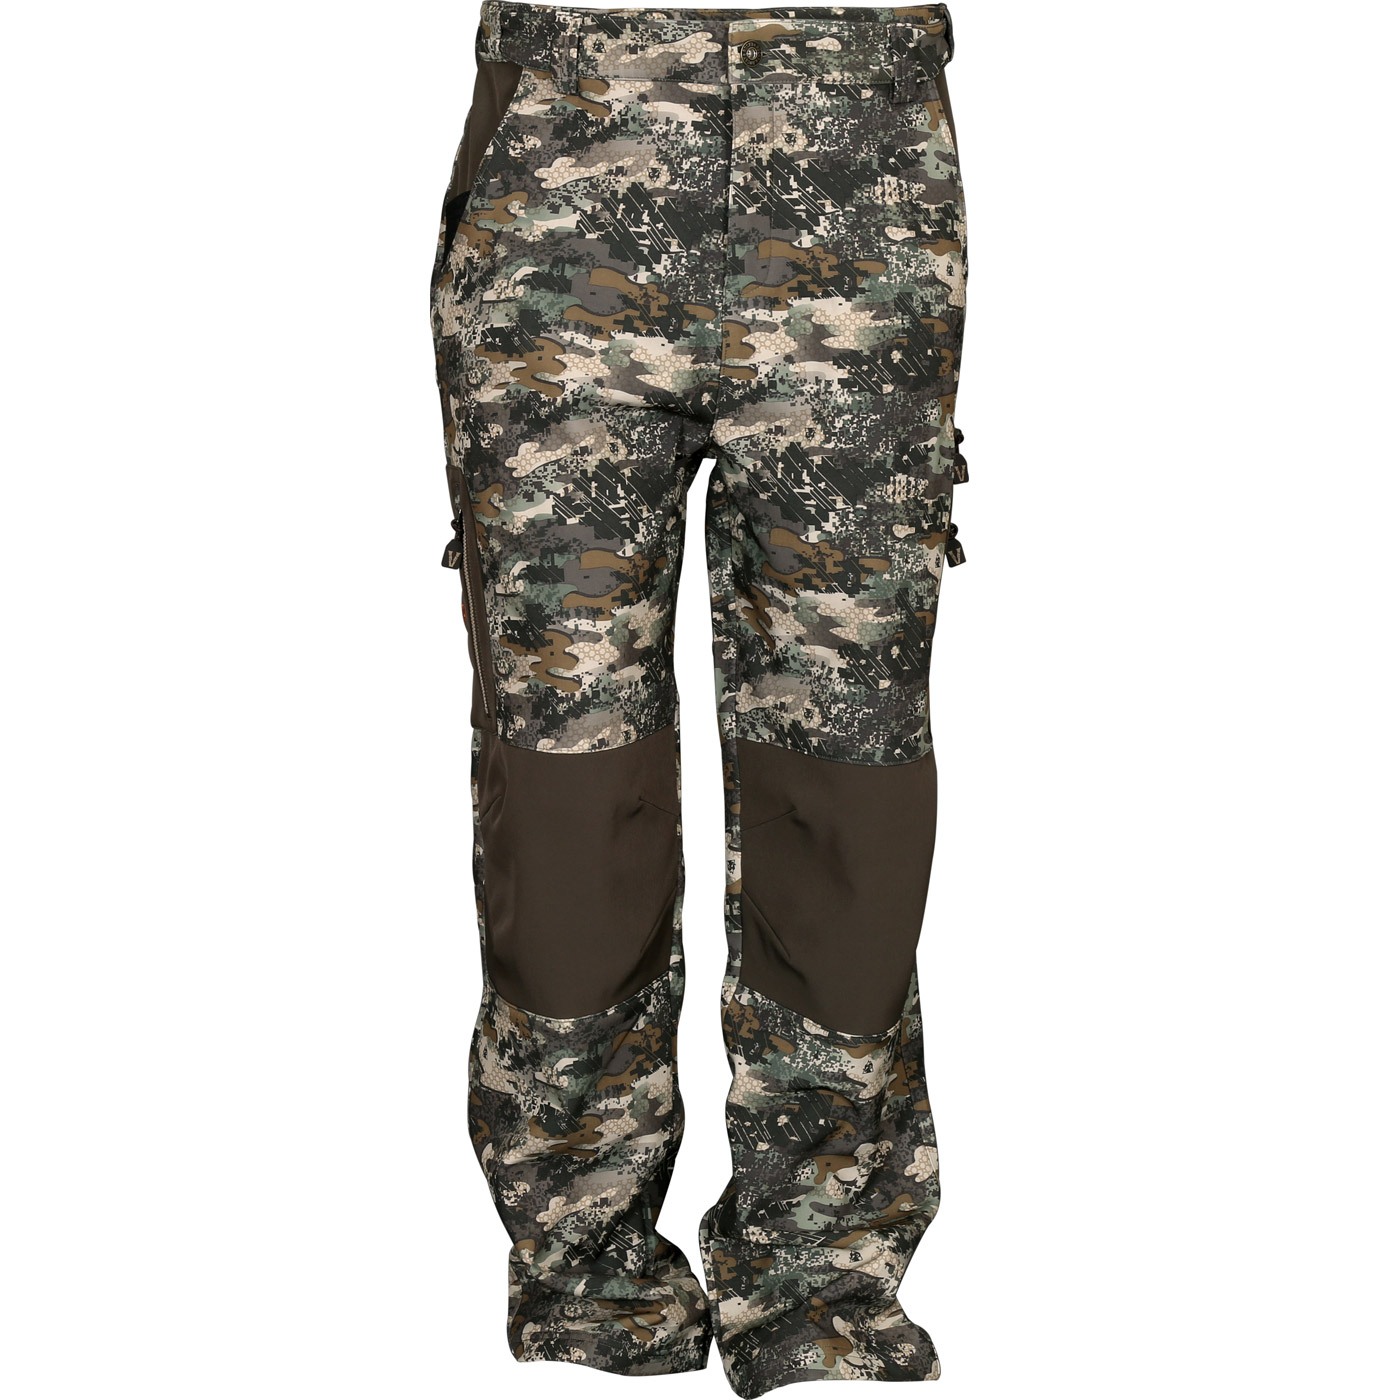 dee222007a72 Rocky Venator -- Men s Camouflage 2-Layer Hunting Pants